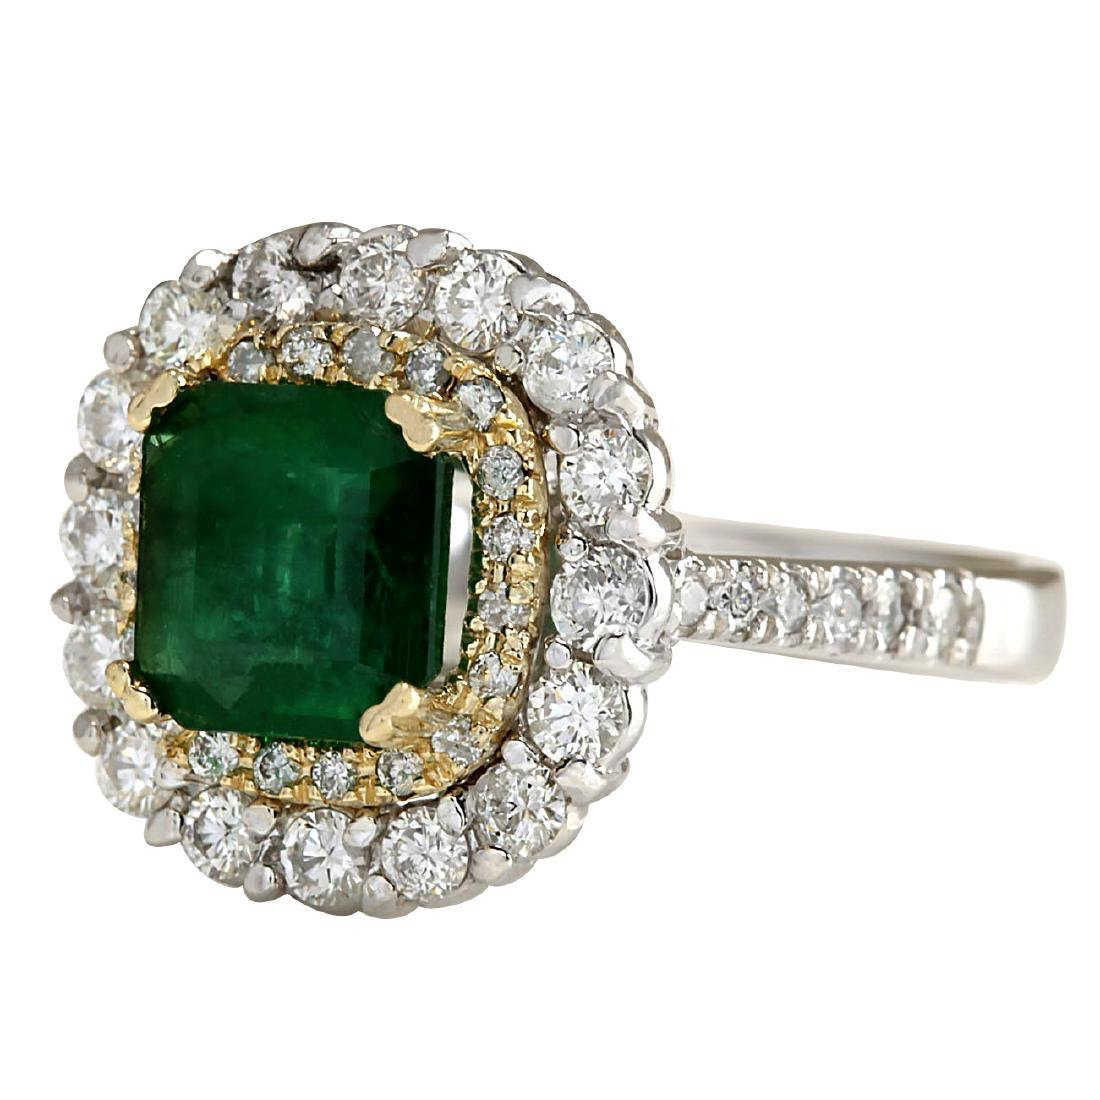 2.88CTW Natural Emerald And Diamond Ring 18K Solid - 2